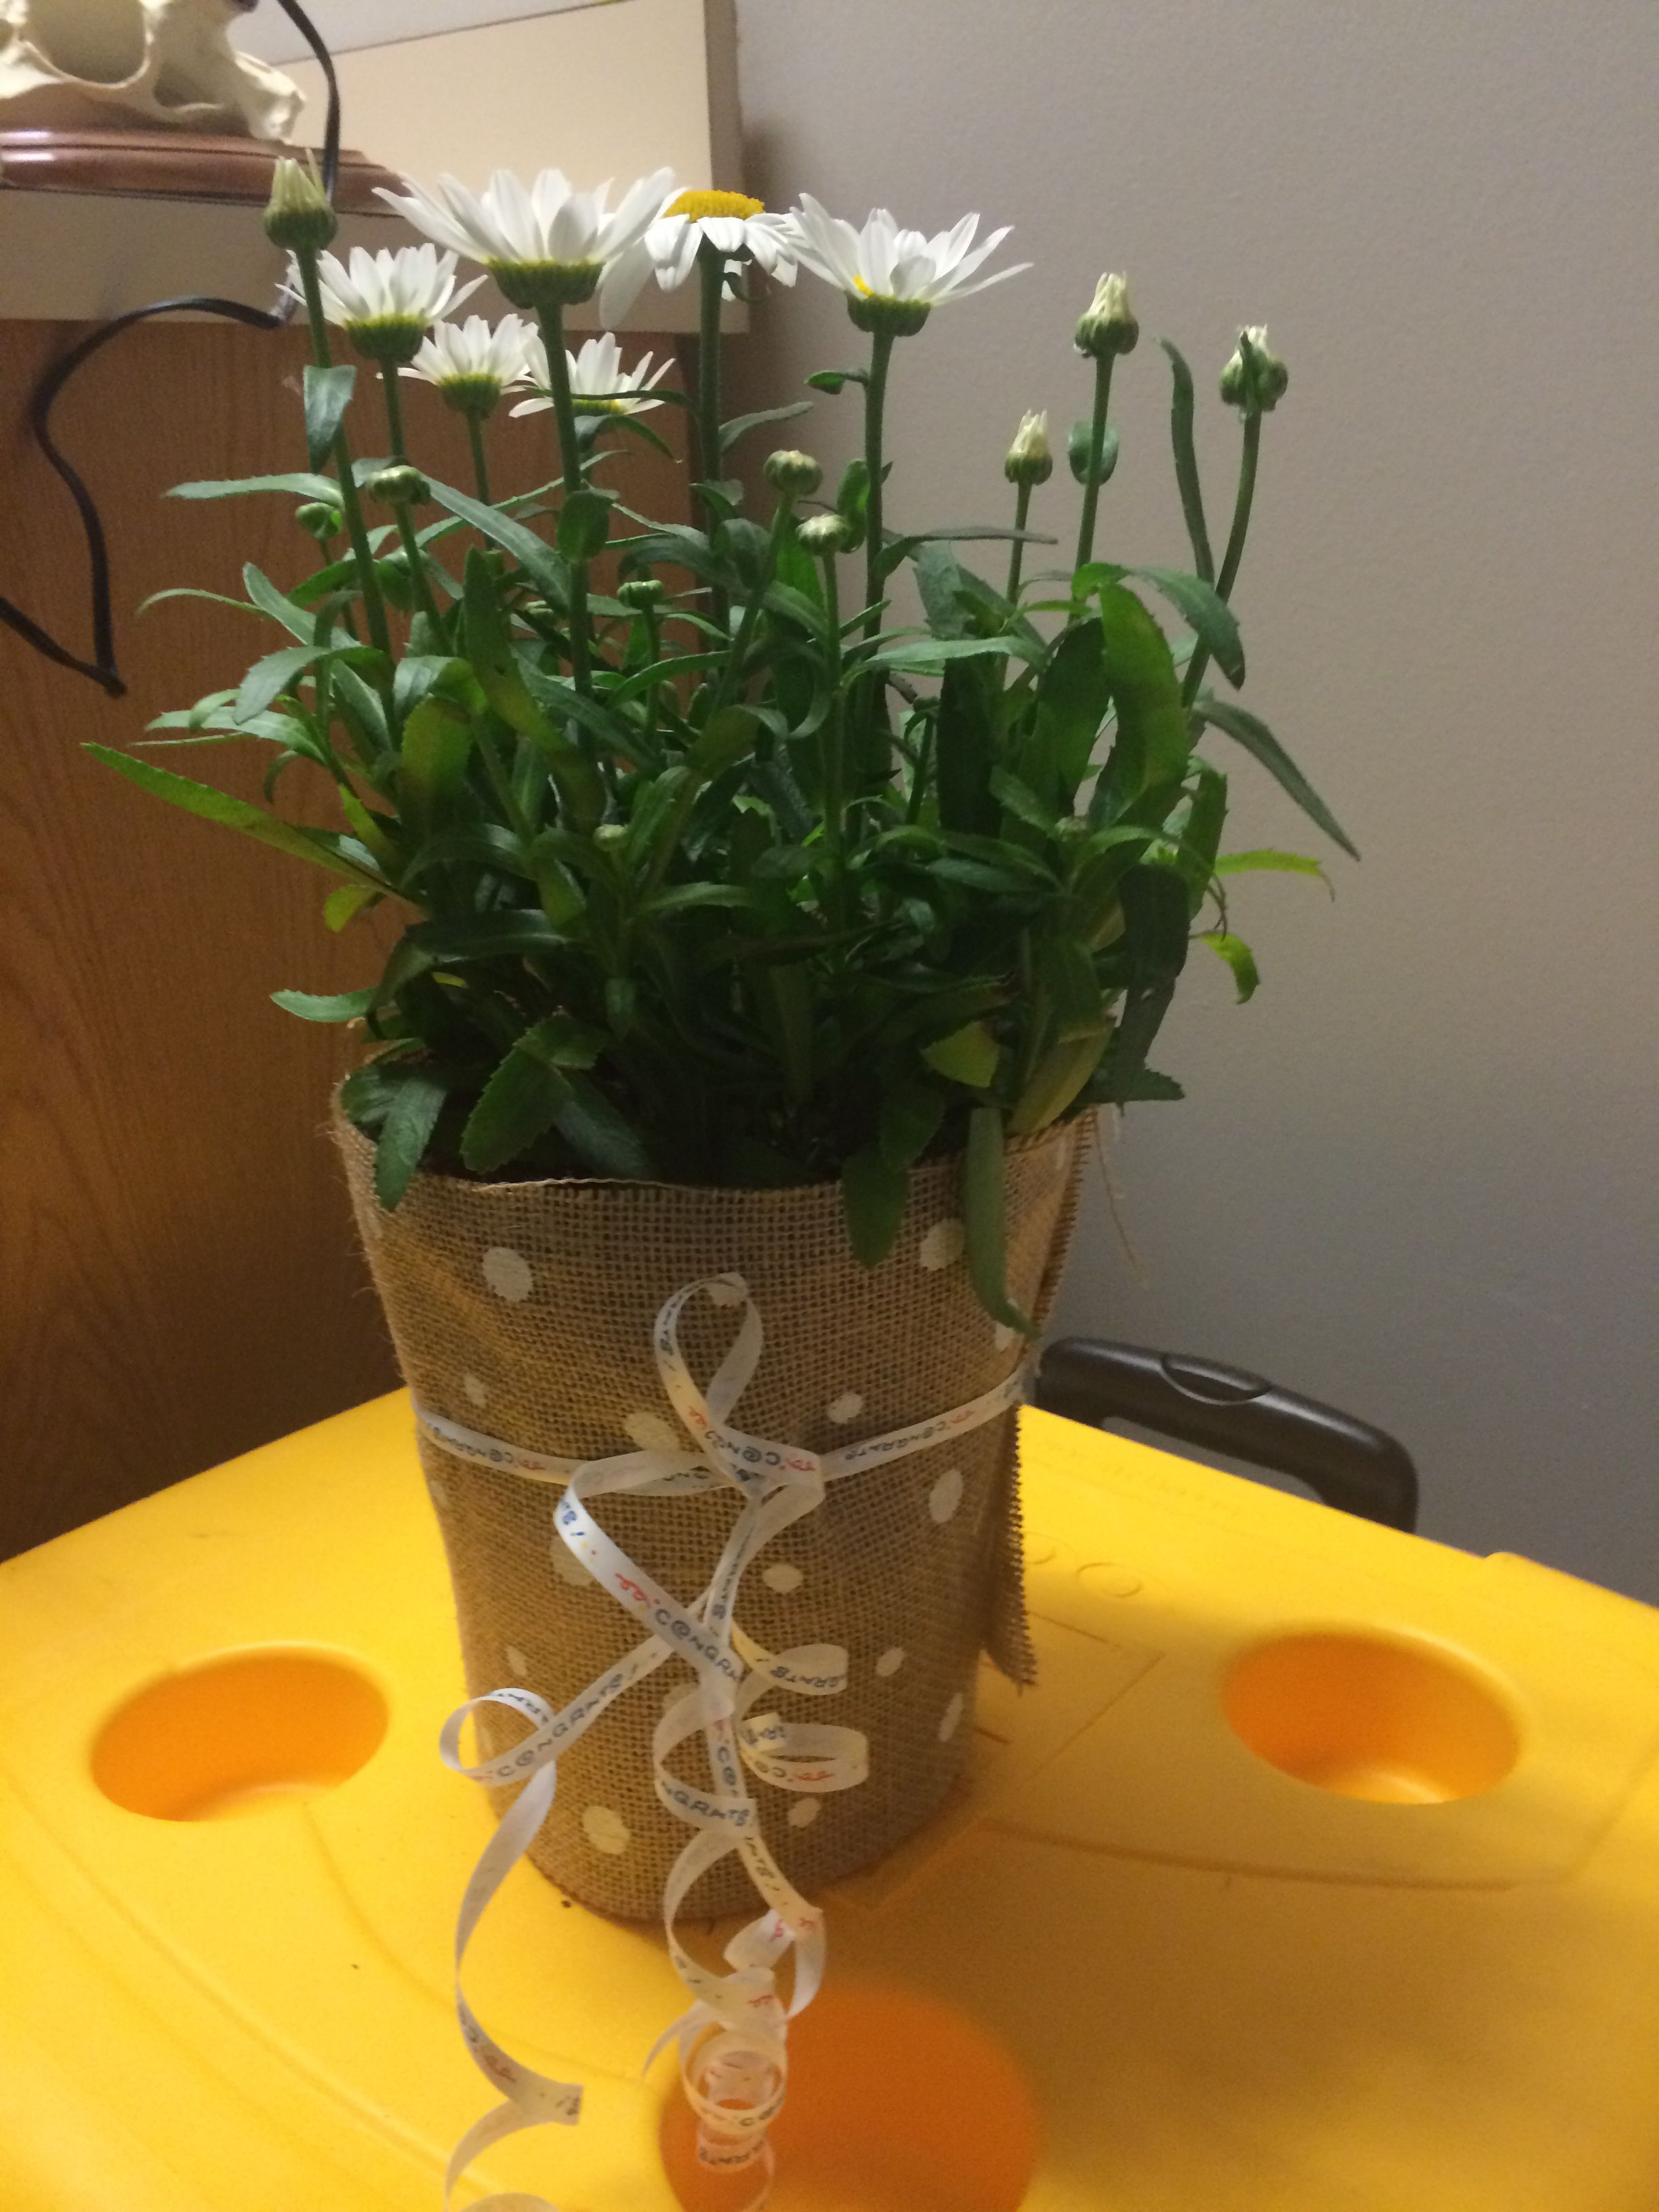 My center piece from daughters grad party. Daisy plant wrapped in white polka dot burlap and ribbon